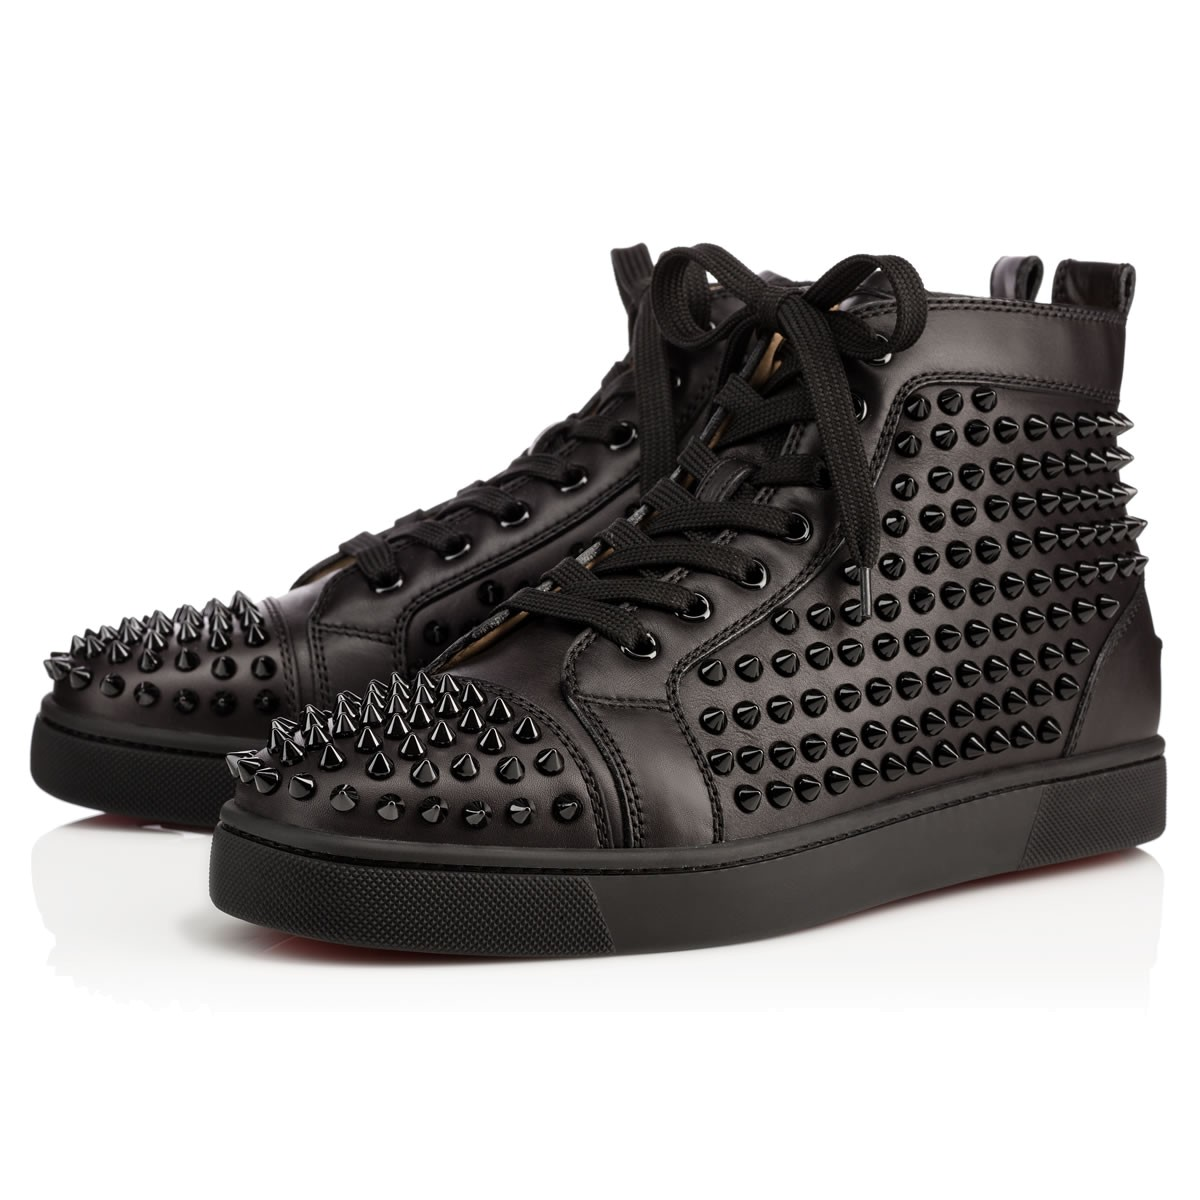 d4710f3985e9 Louis Spikes Men s Flat Black Black Bk Leather - Men Shoes ...